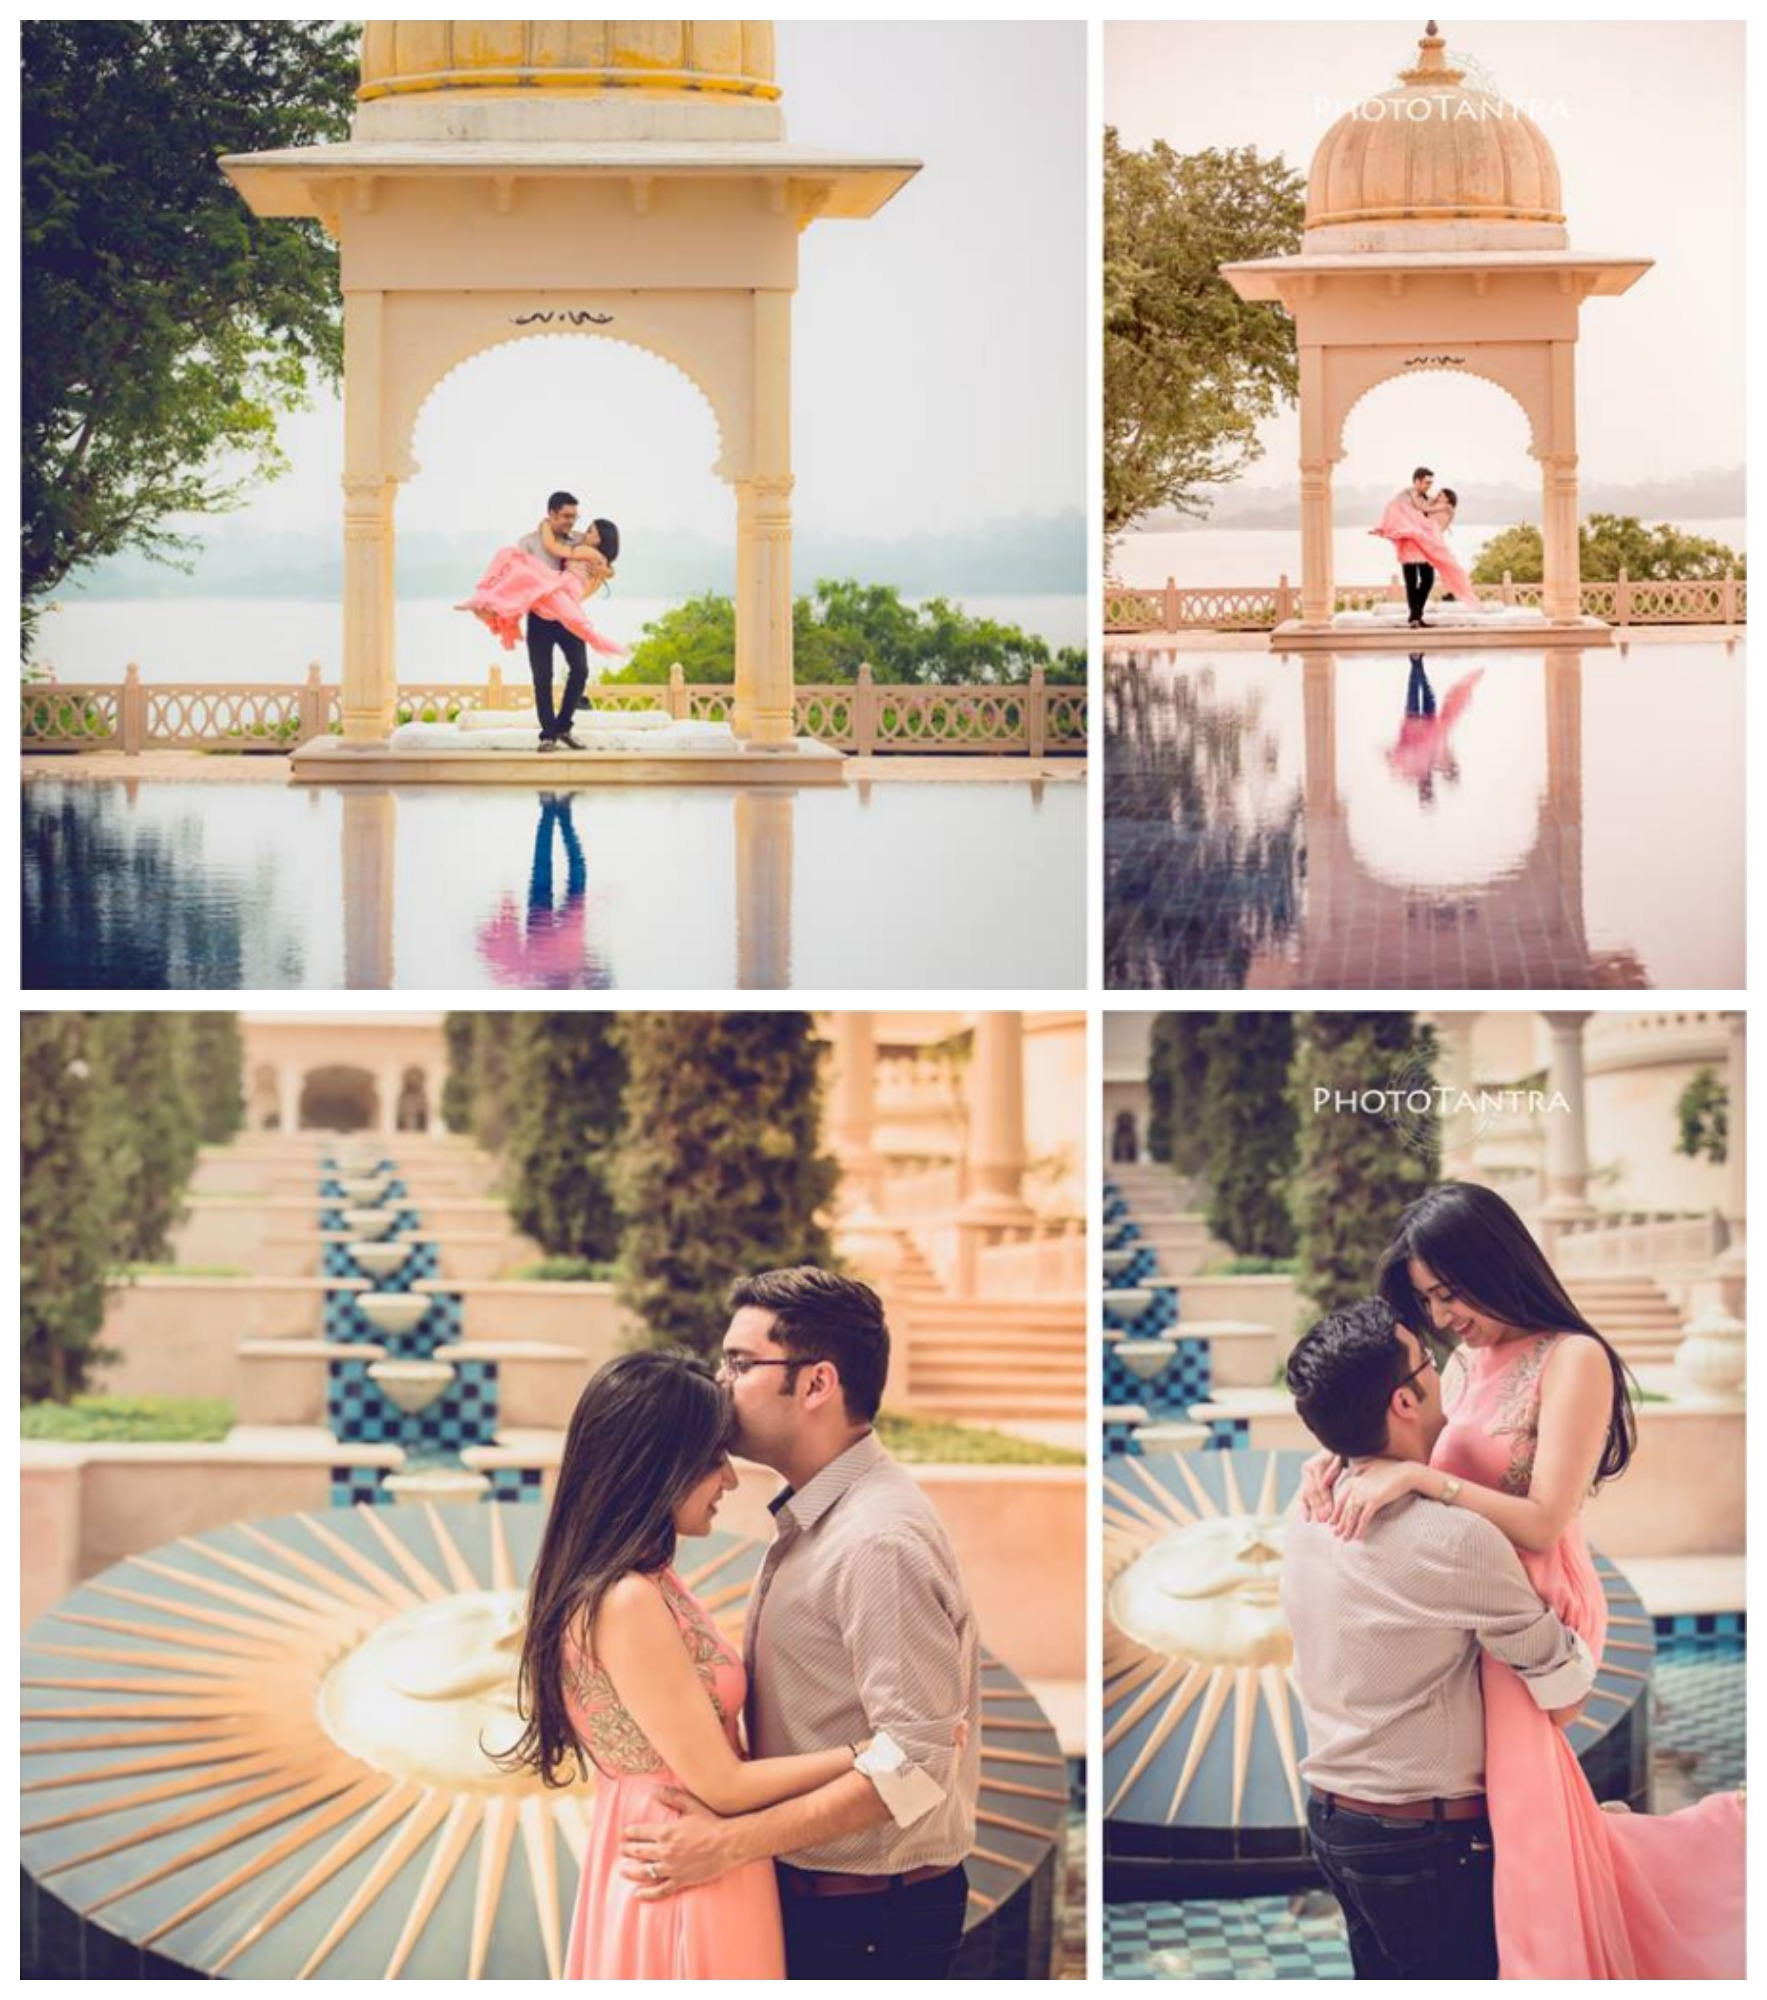 Christmas PreWedding Photoshoot Outfit Ideas